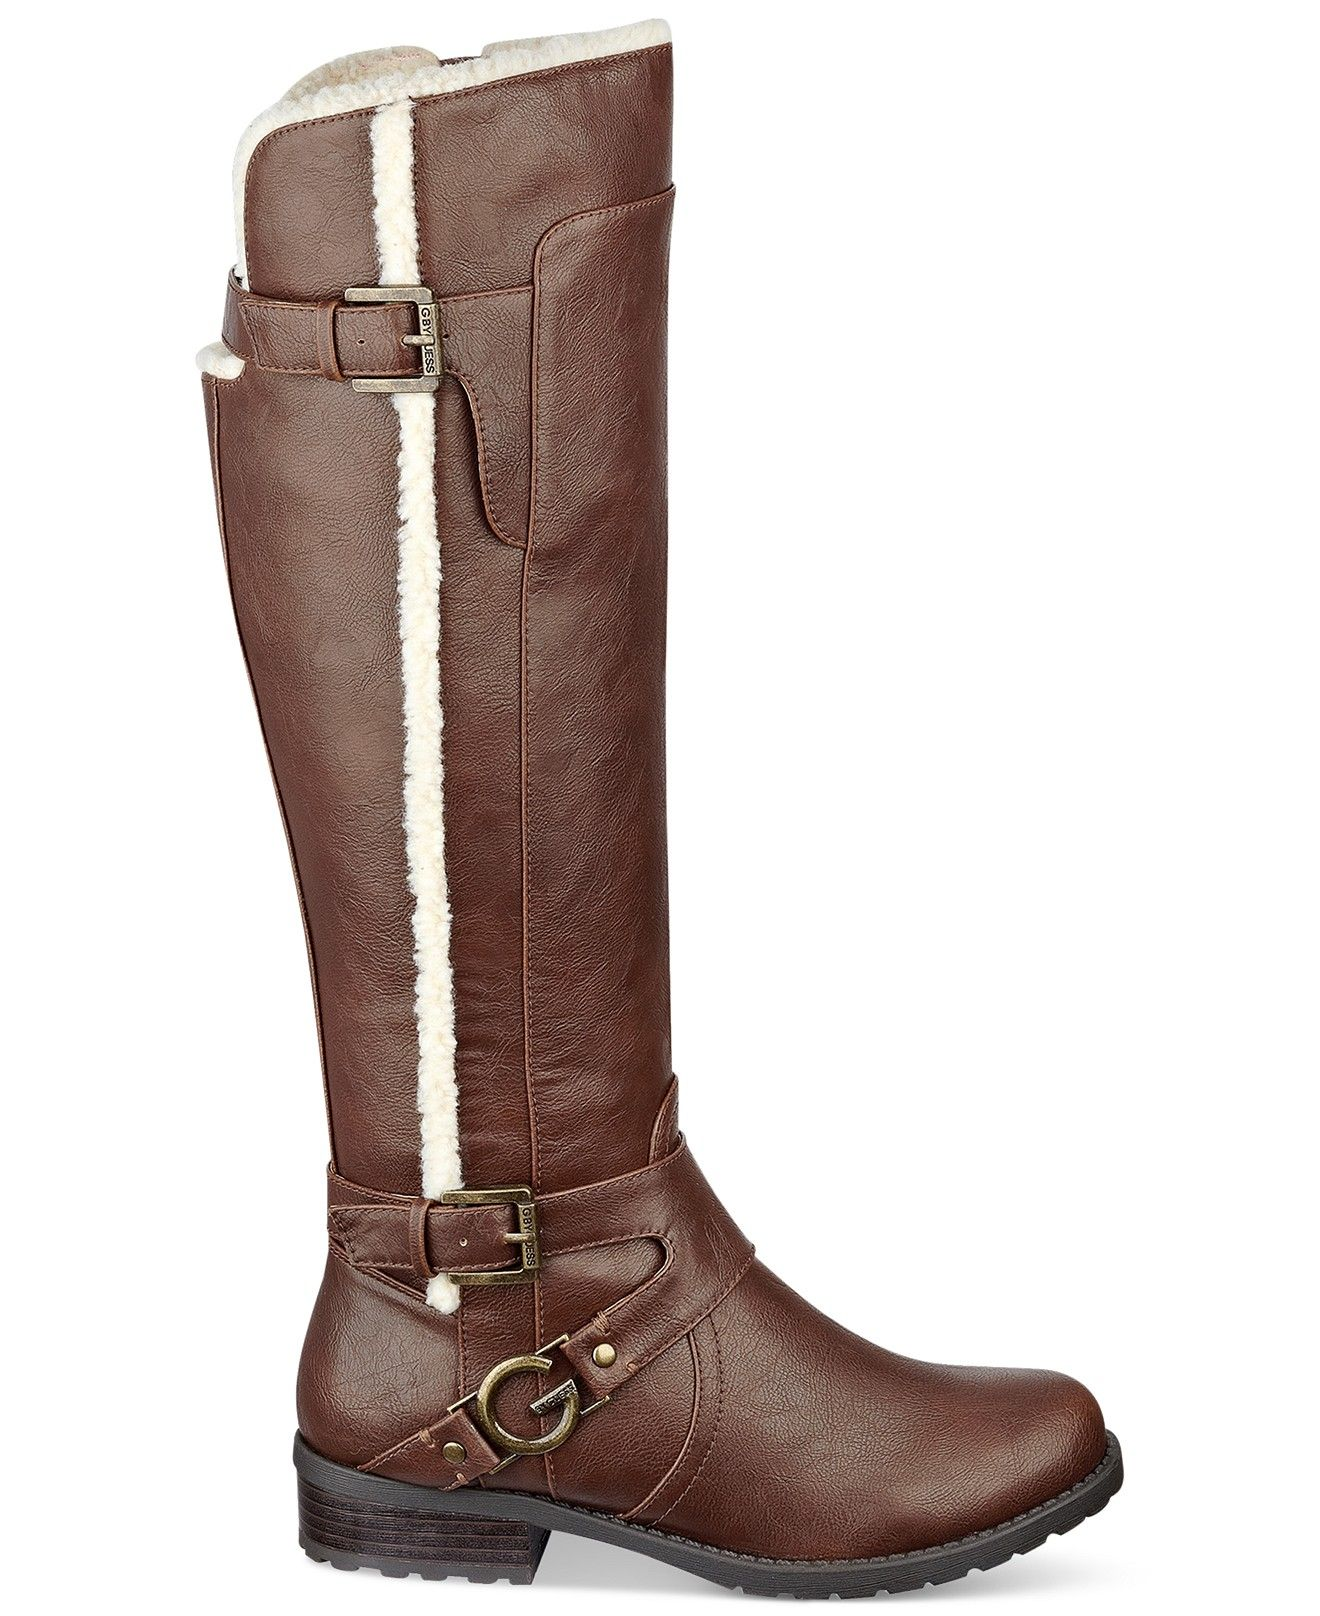 f1514d6d89f G by GUESS Hollow Riding Boots - Sale & Clearance - Shoes - Macy's ...